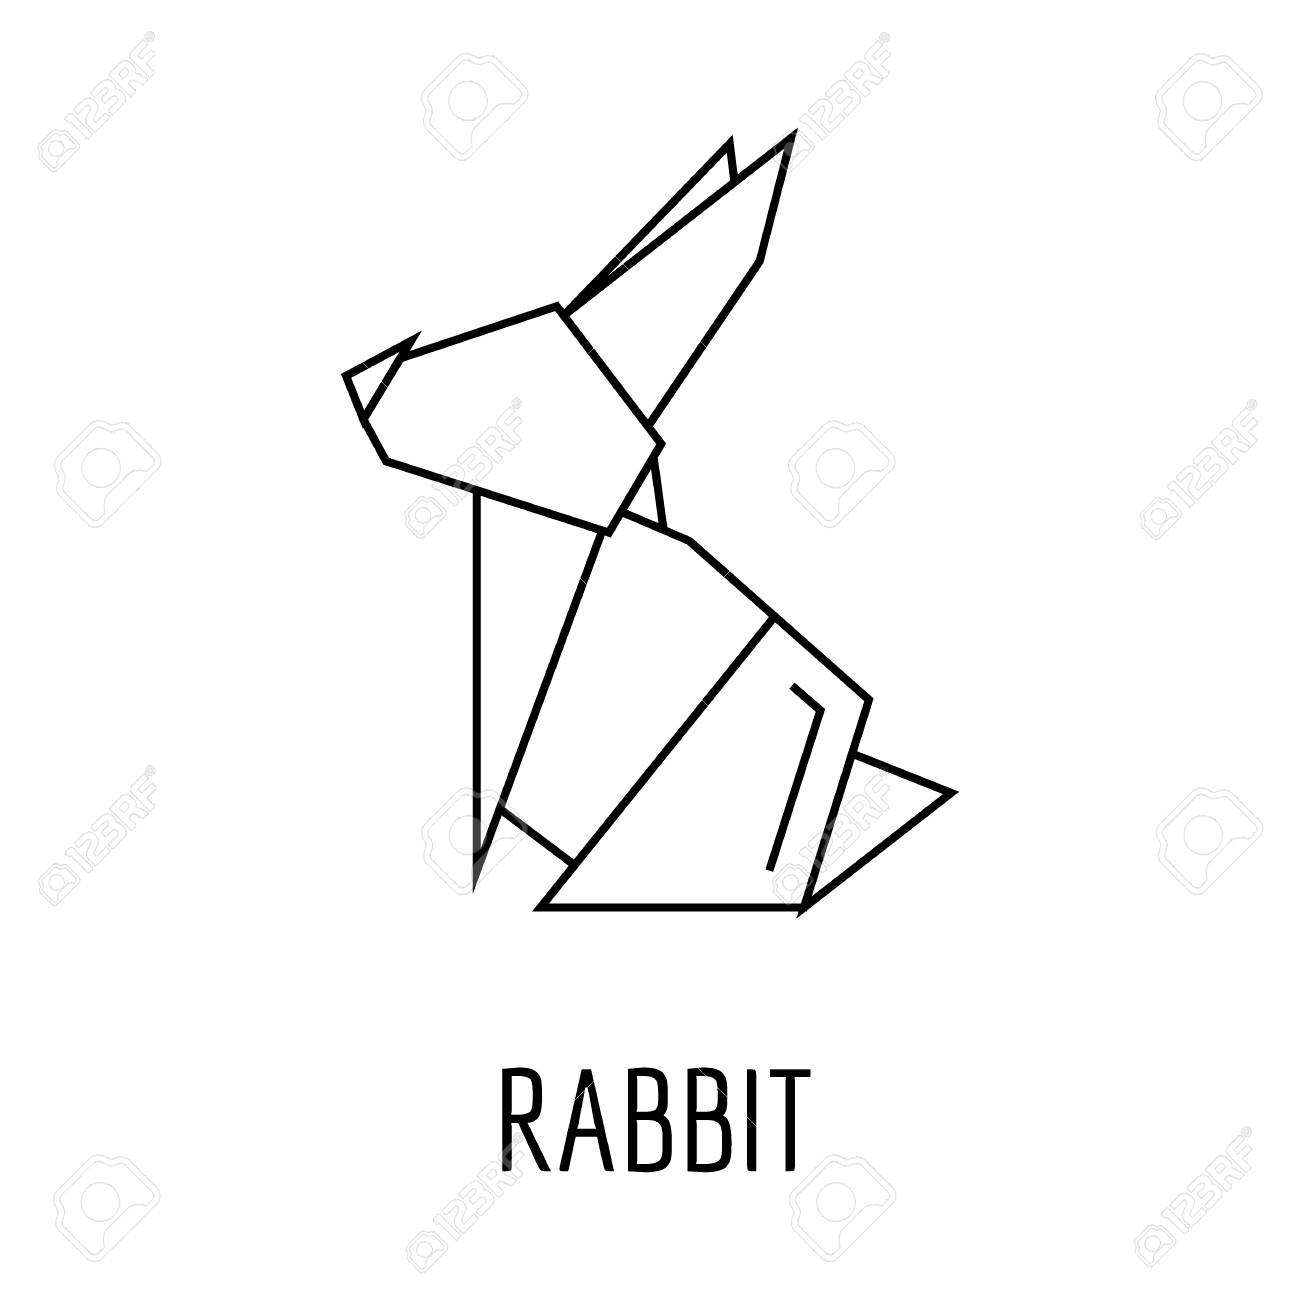 Origami Rabbit Icon Outline Vector For Web Design Isolated On White Background